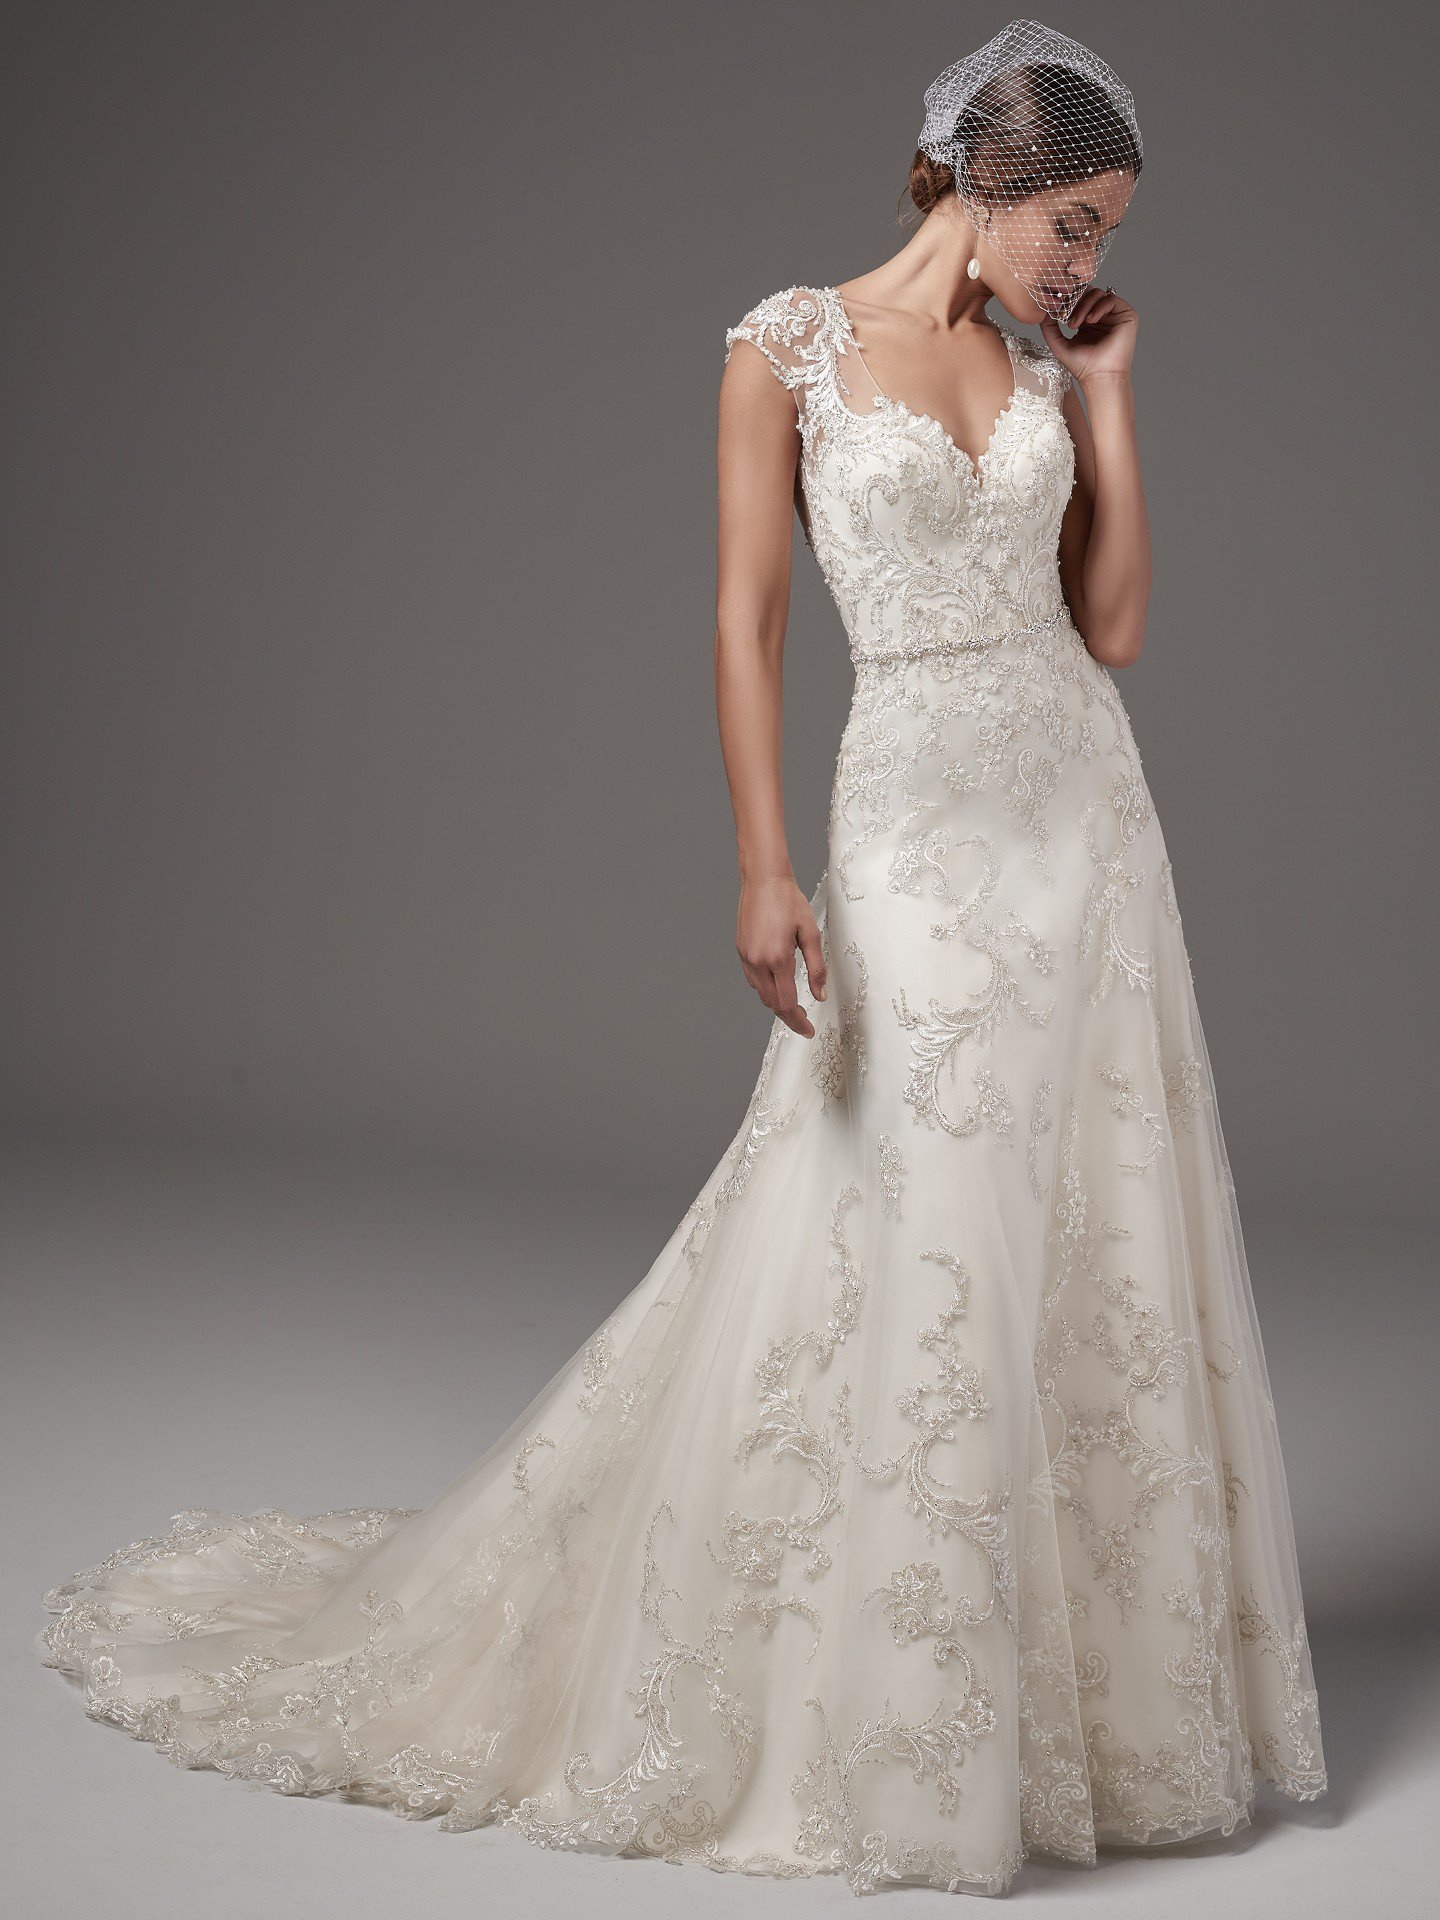 SMNICOLETTEBridal Gown bySottero & Midgley Full Front